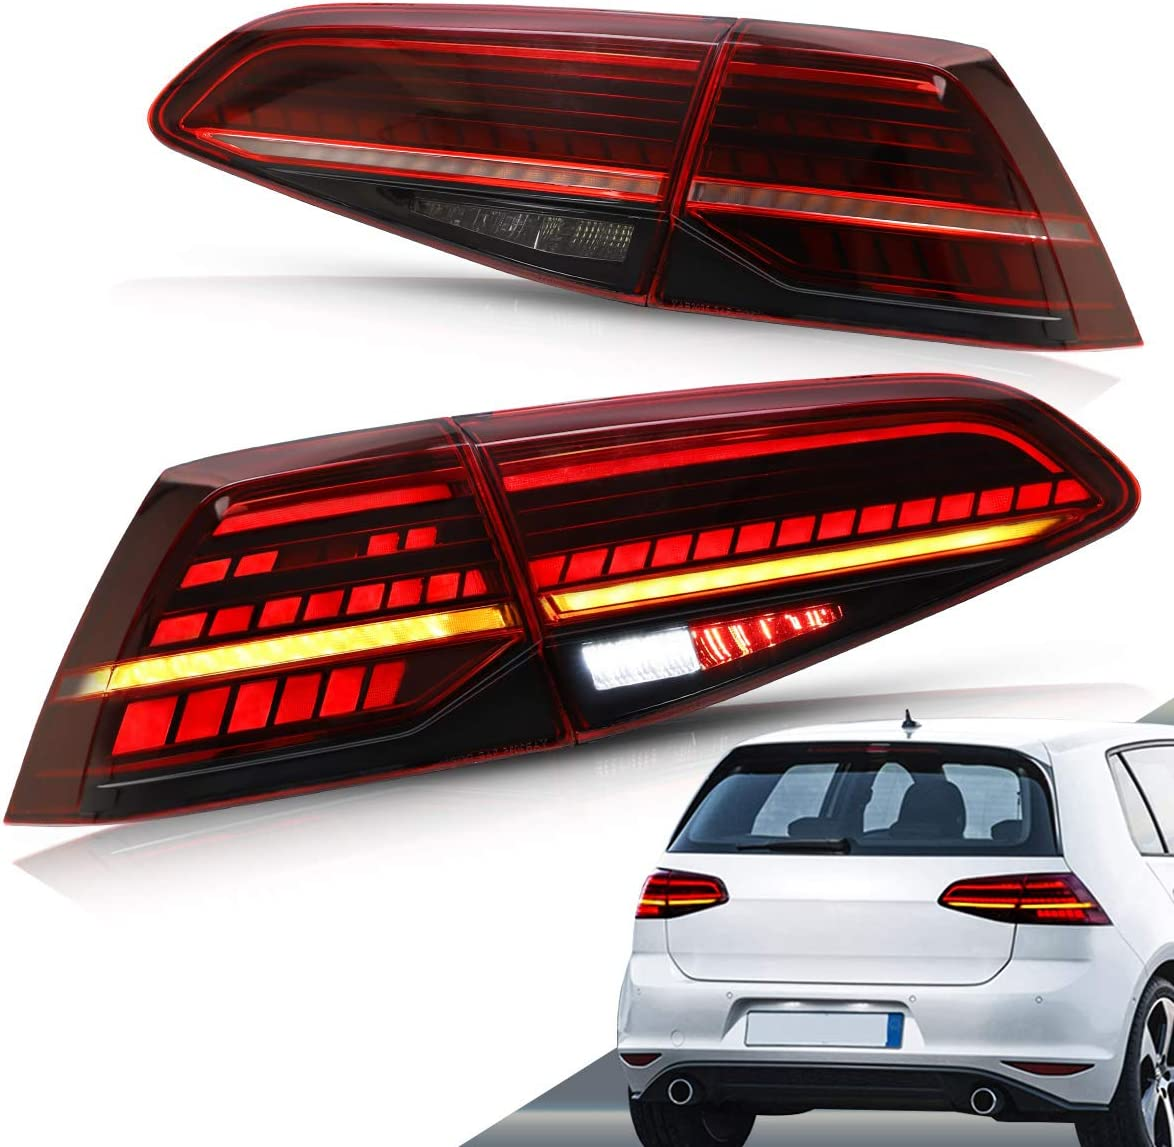 VLAND LED Tail Lights For 2013-2019 golf 7 golf mk7 mk7.5 Rear Lights with Sequential indicator UK STOCK (Red lens)